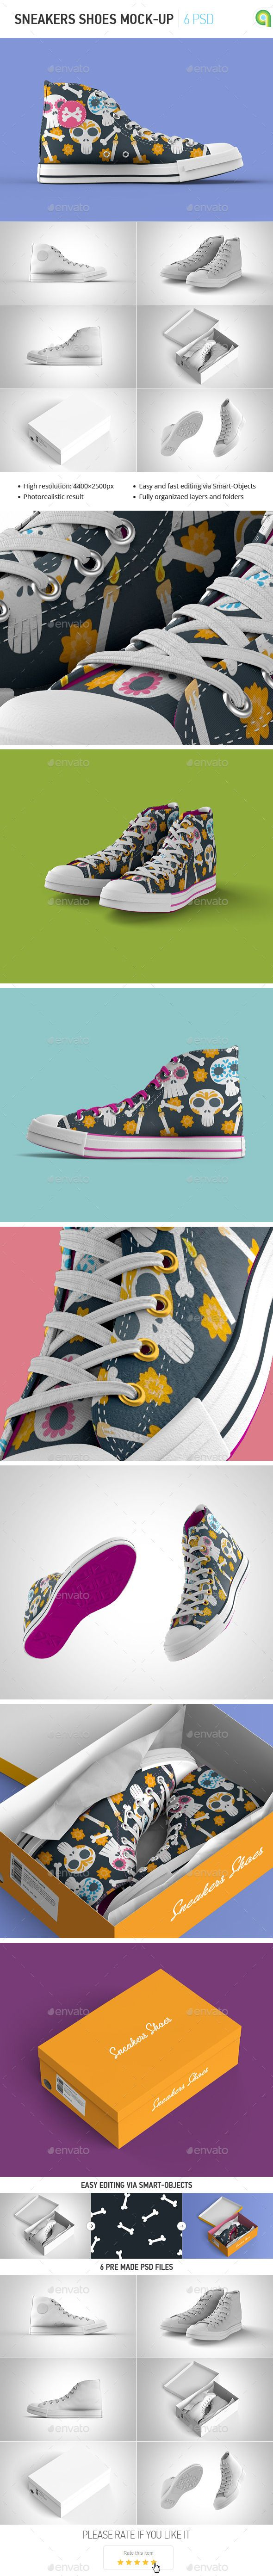 Sneakers Shoes Mock-up #design Download: http://graphicriver.net/item/sneakers-shoes-mockup/12703333?ref=ksioks